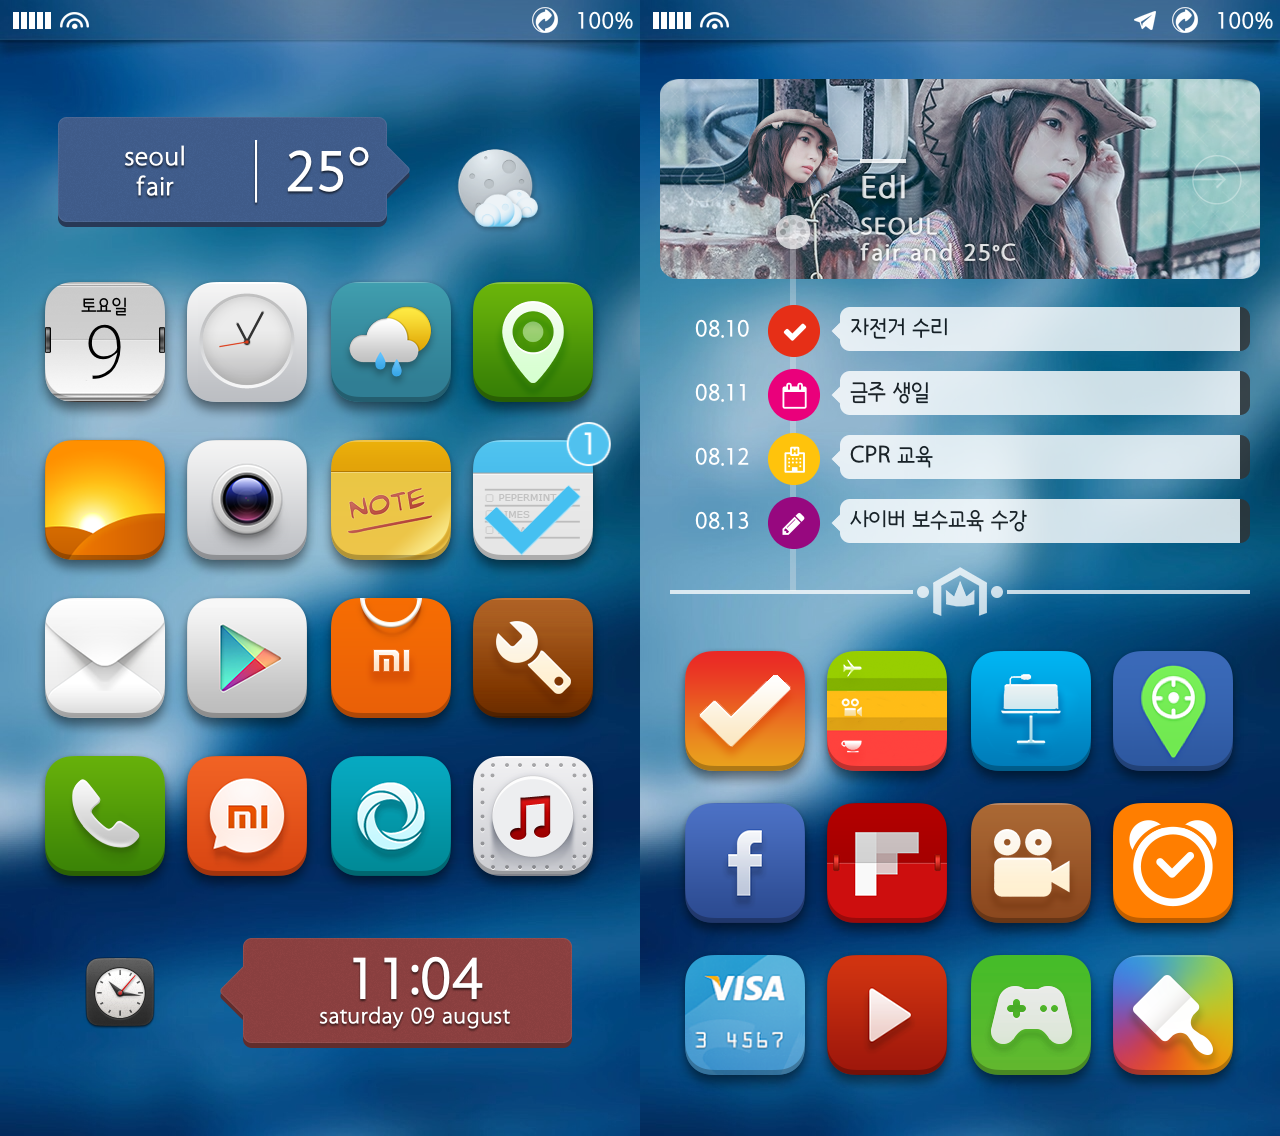 Miui by Edl21